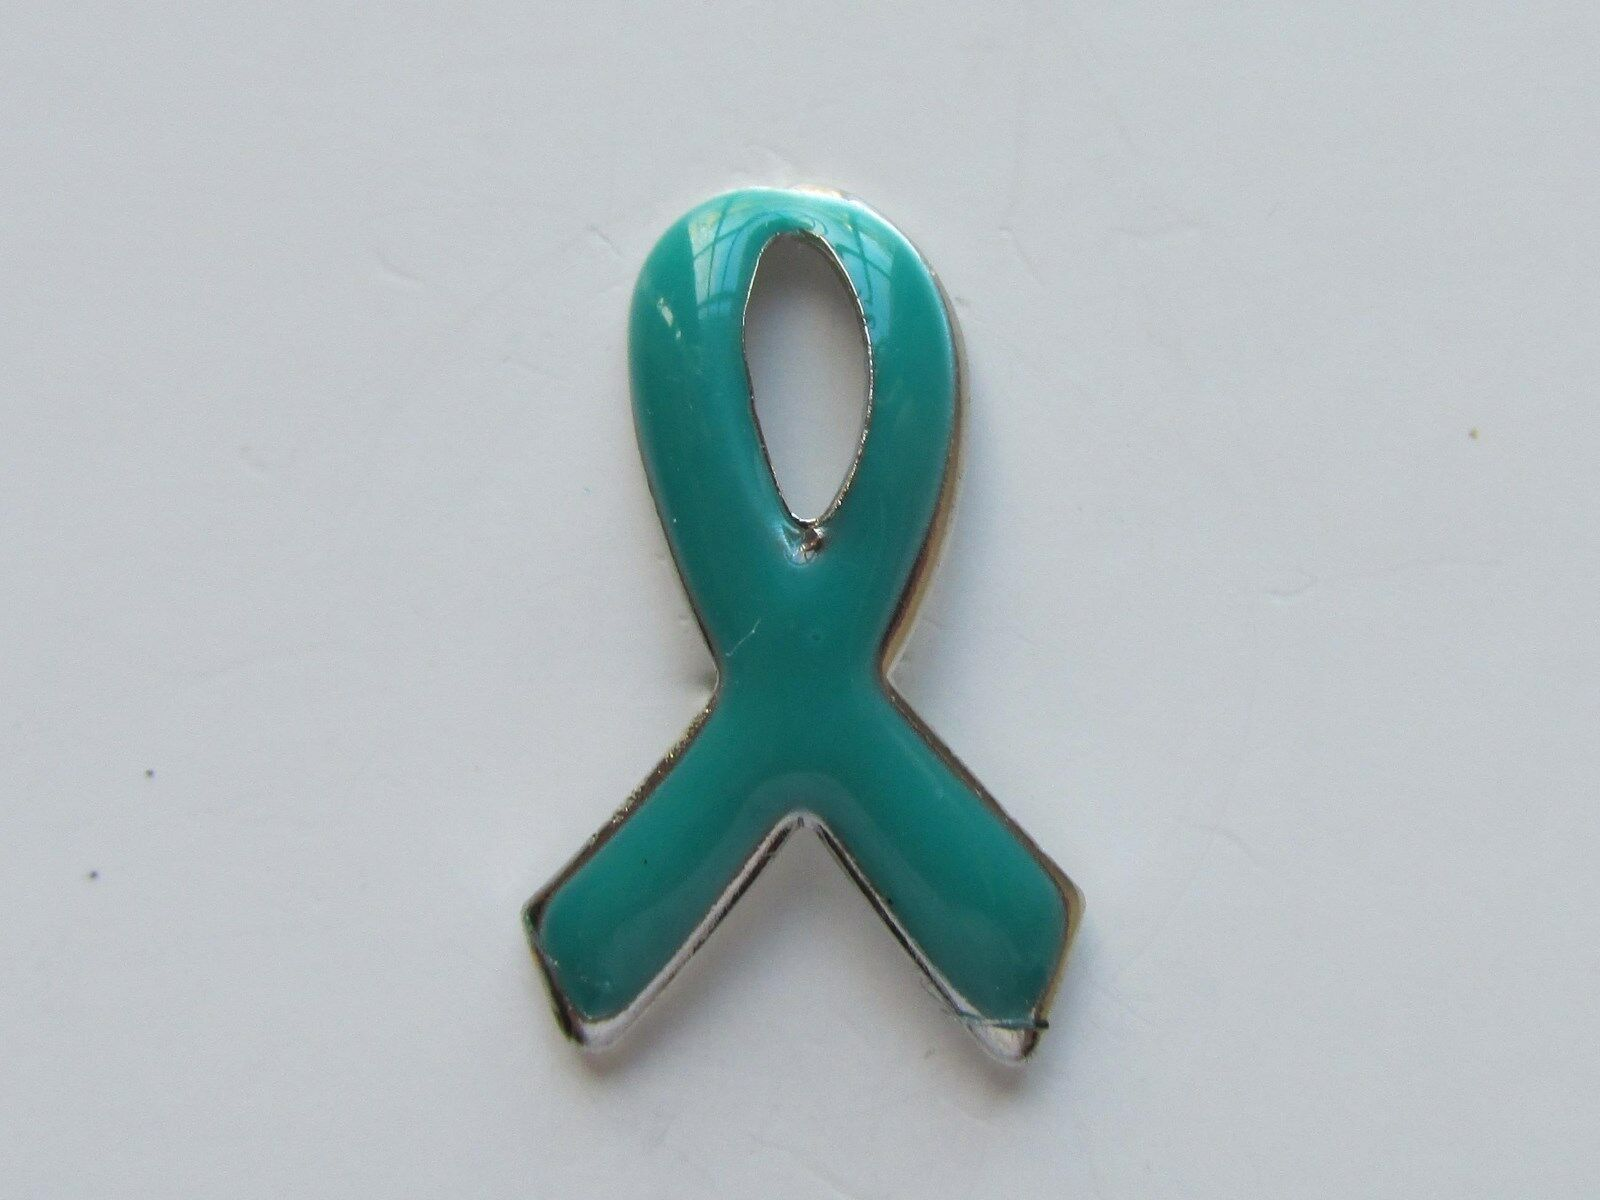 12 enamel teal ribbon awareness pins ovarian cervical cancer sh picture 1 of 2 biocorpaavc